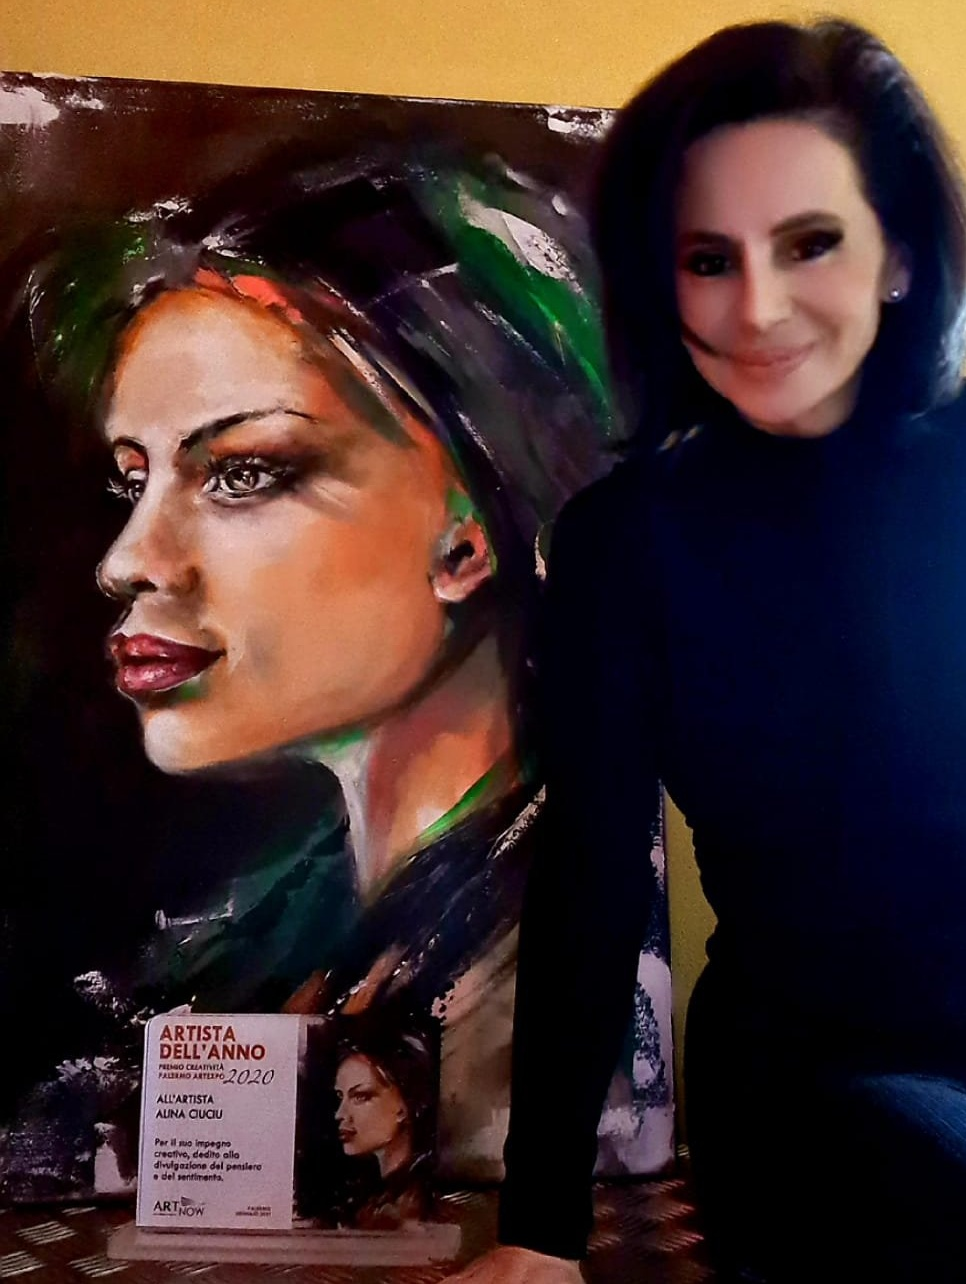 ArteDiAlina.com painting: Medea (and me)